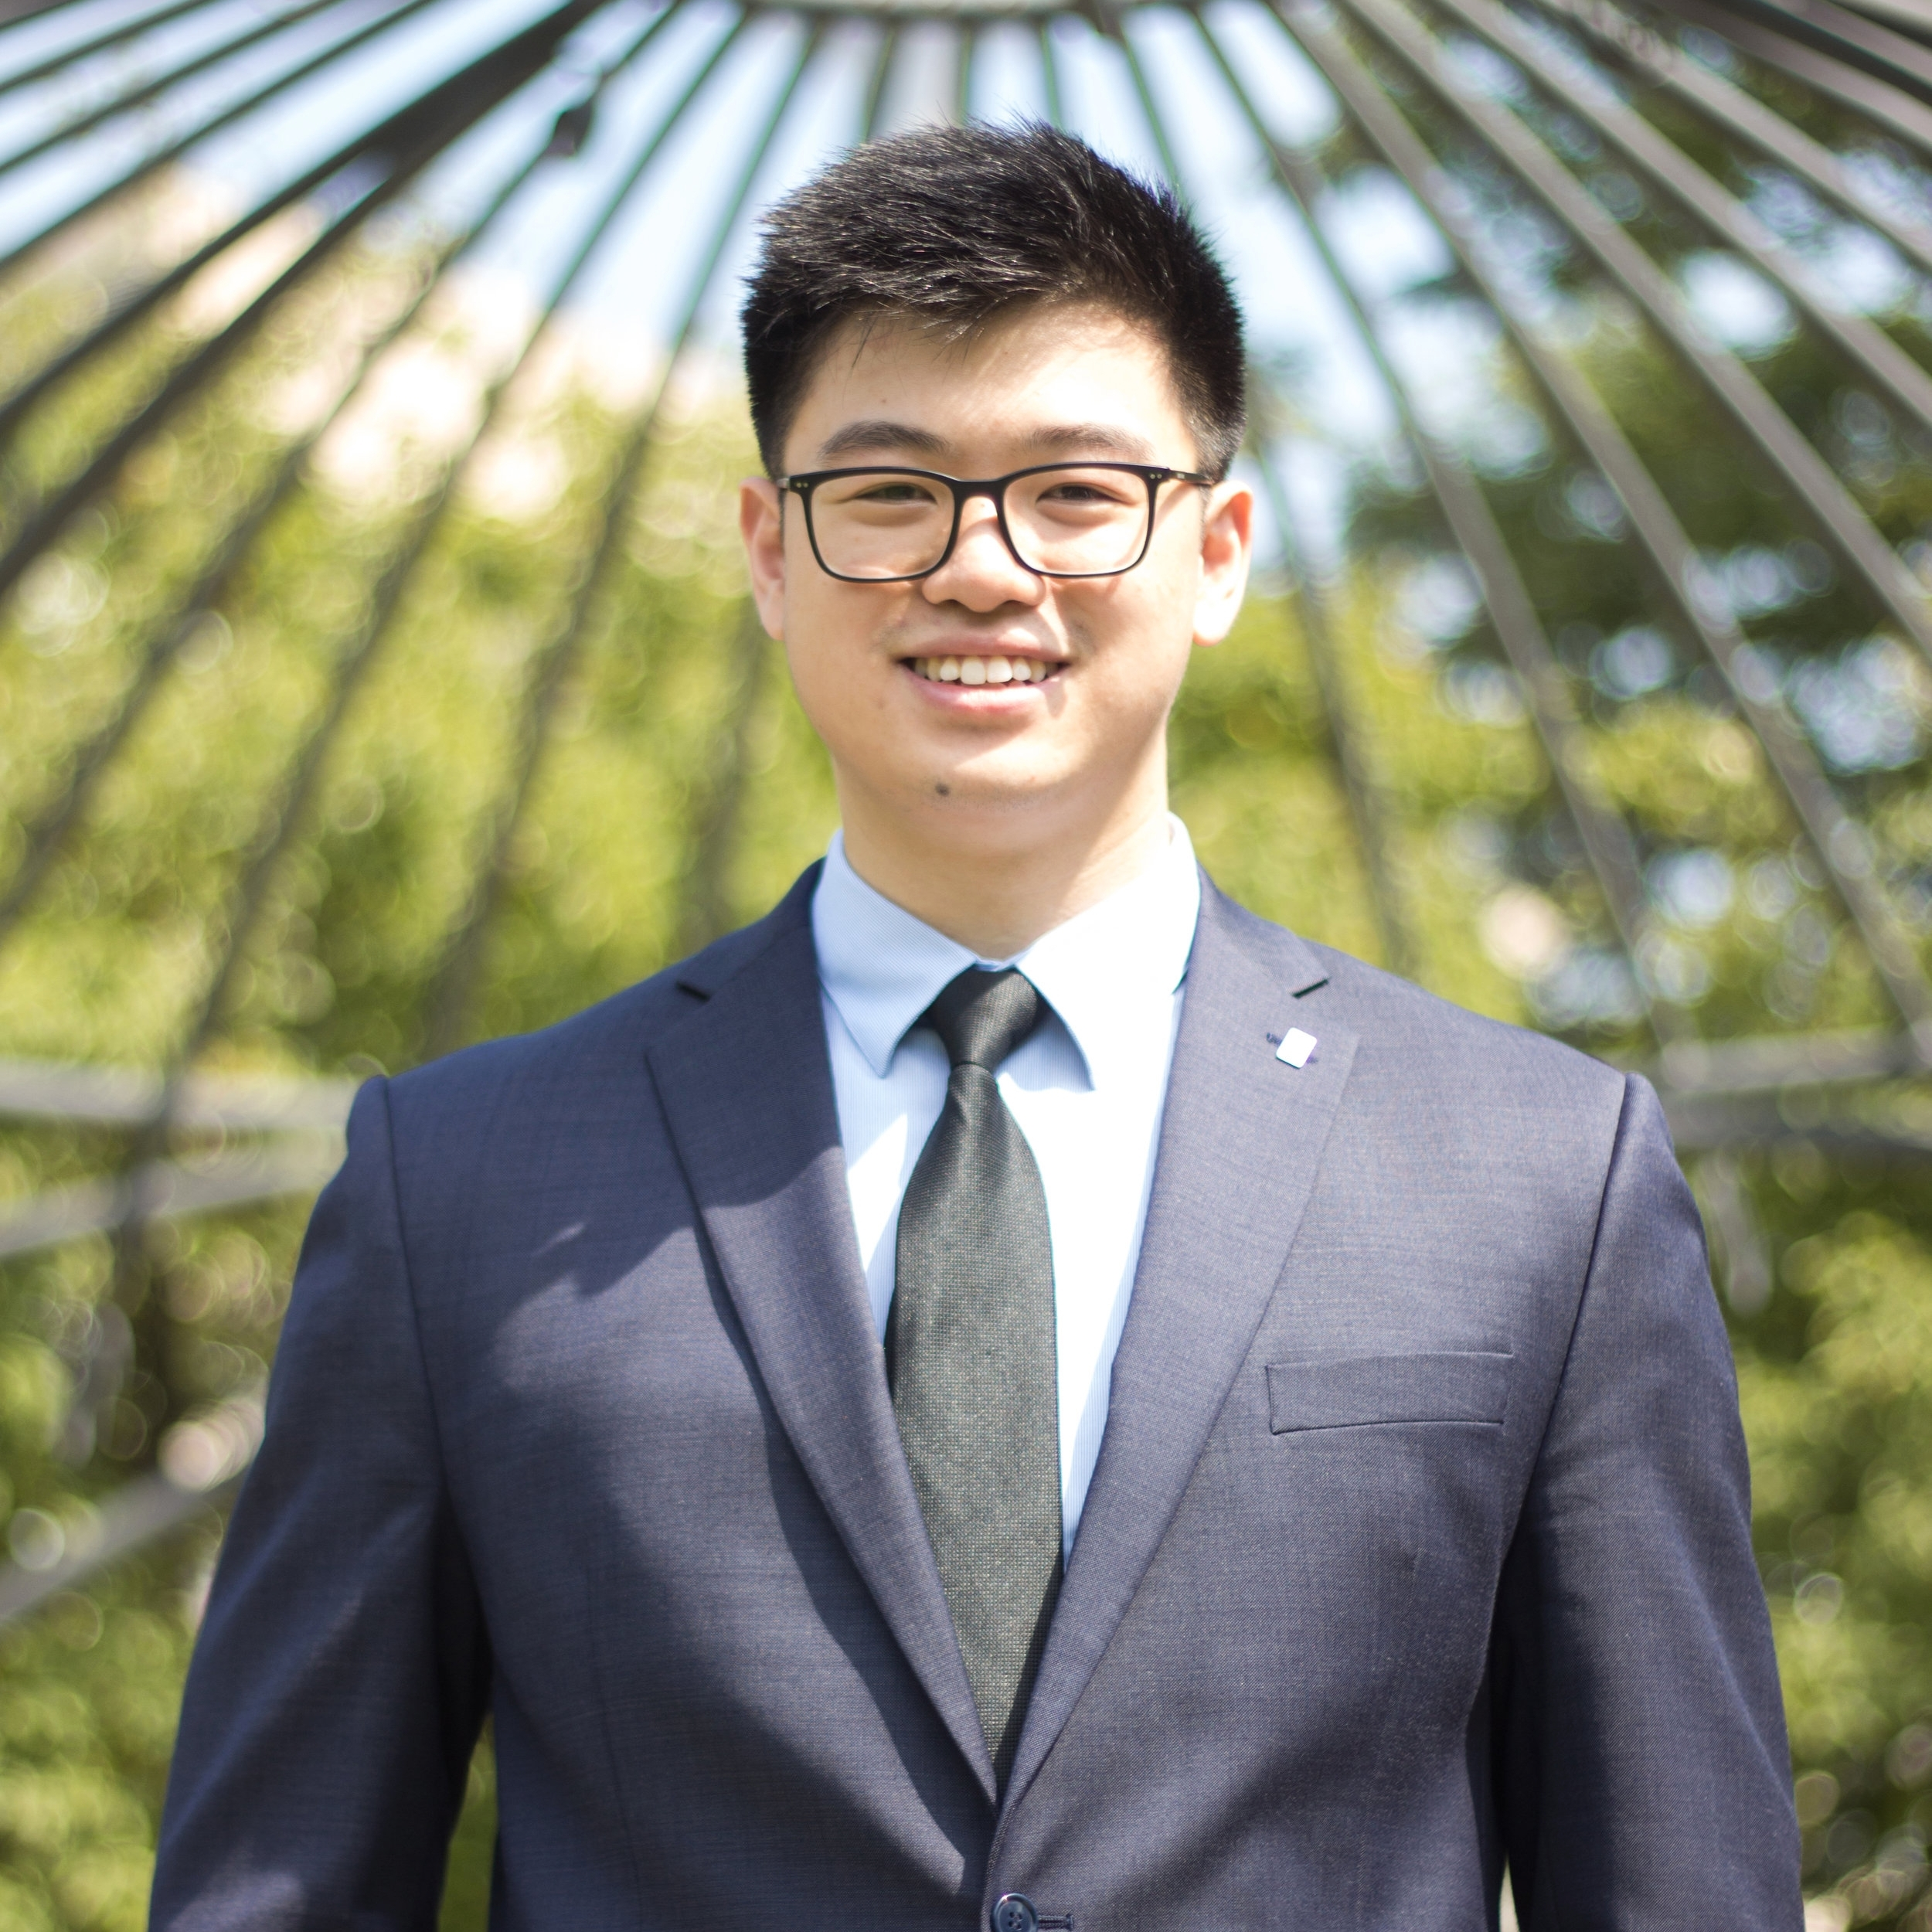 Ritchie Tran - Director of Marketing  4th year, majoring in Marketing Management